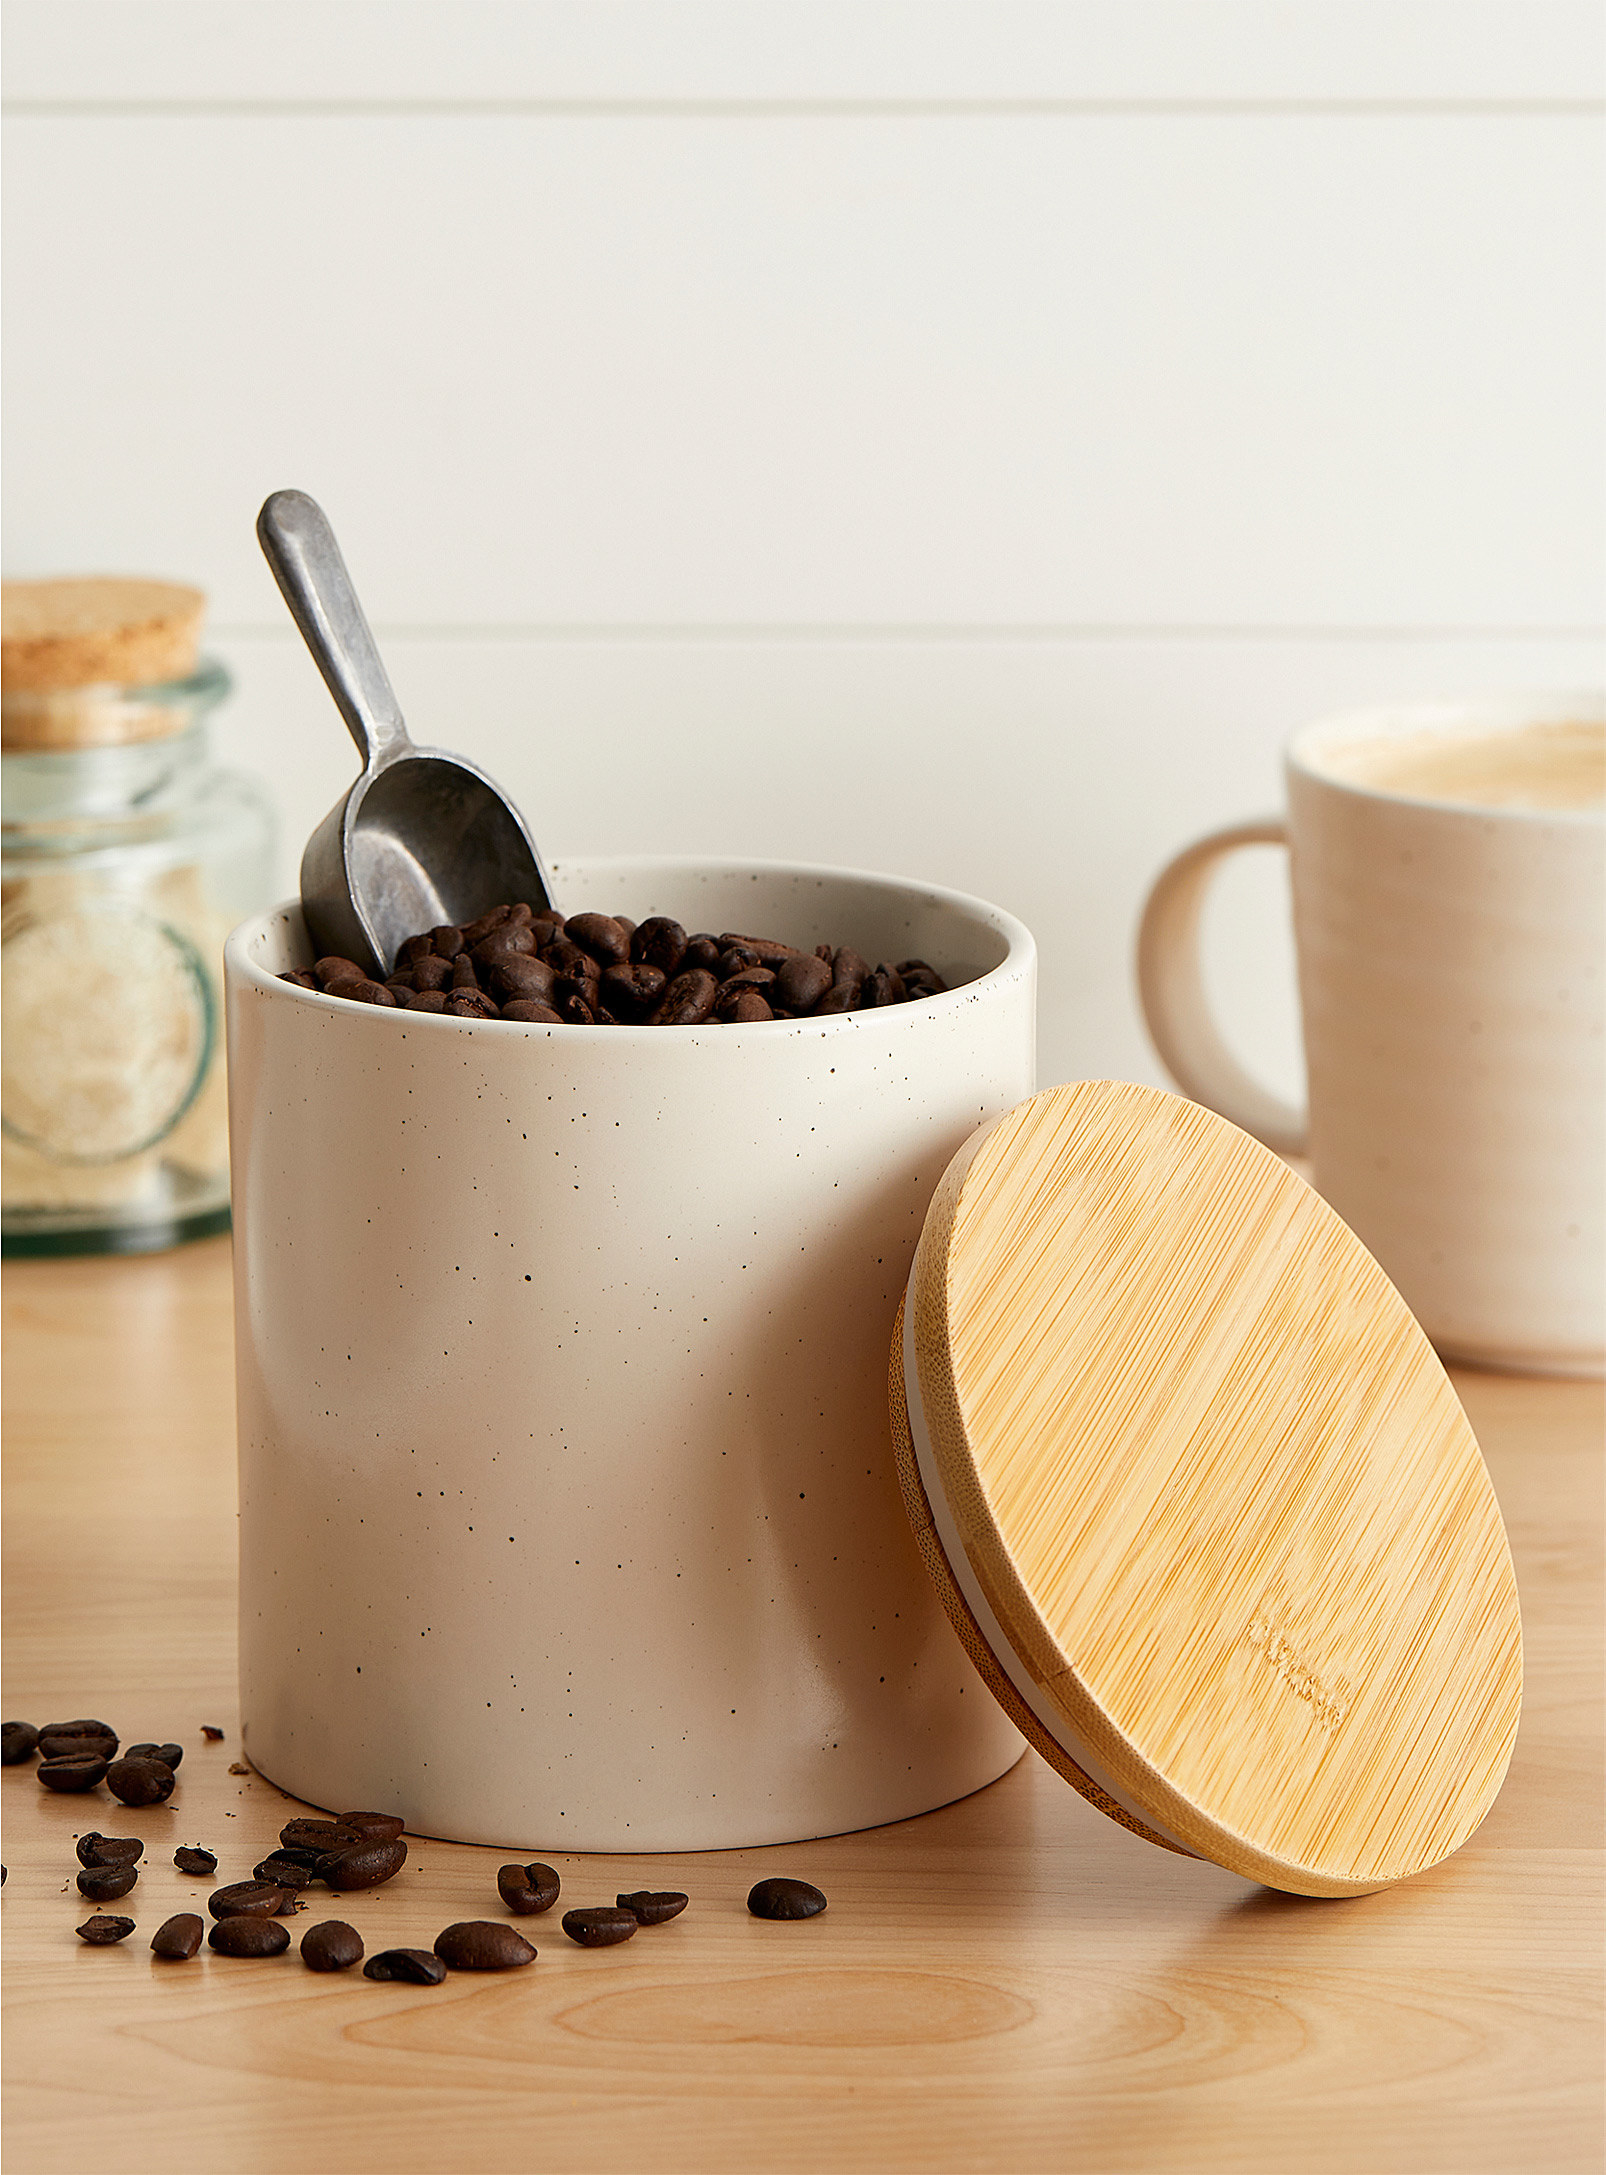 A ceramic jar filled with coffee beans